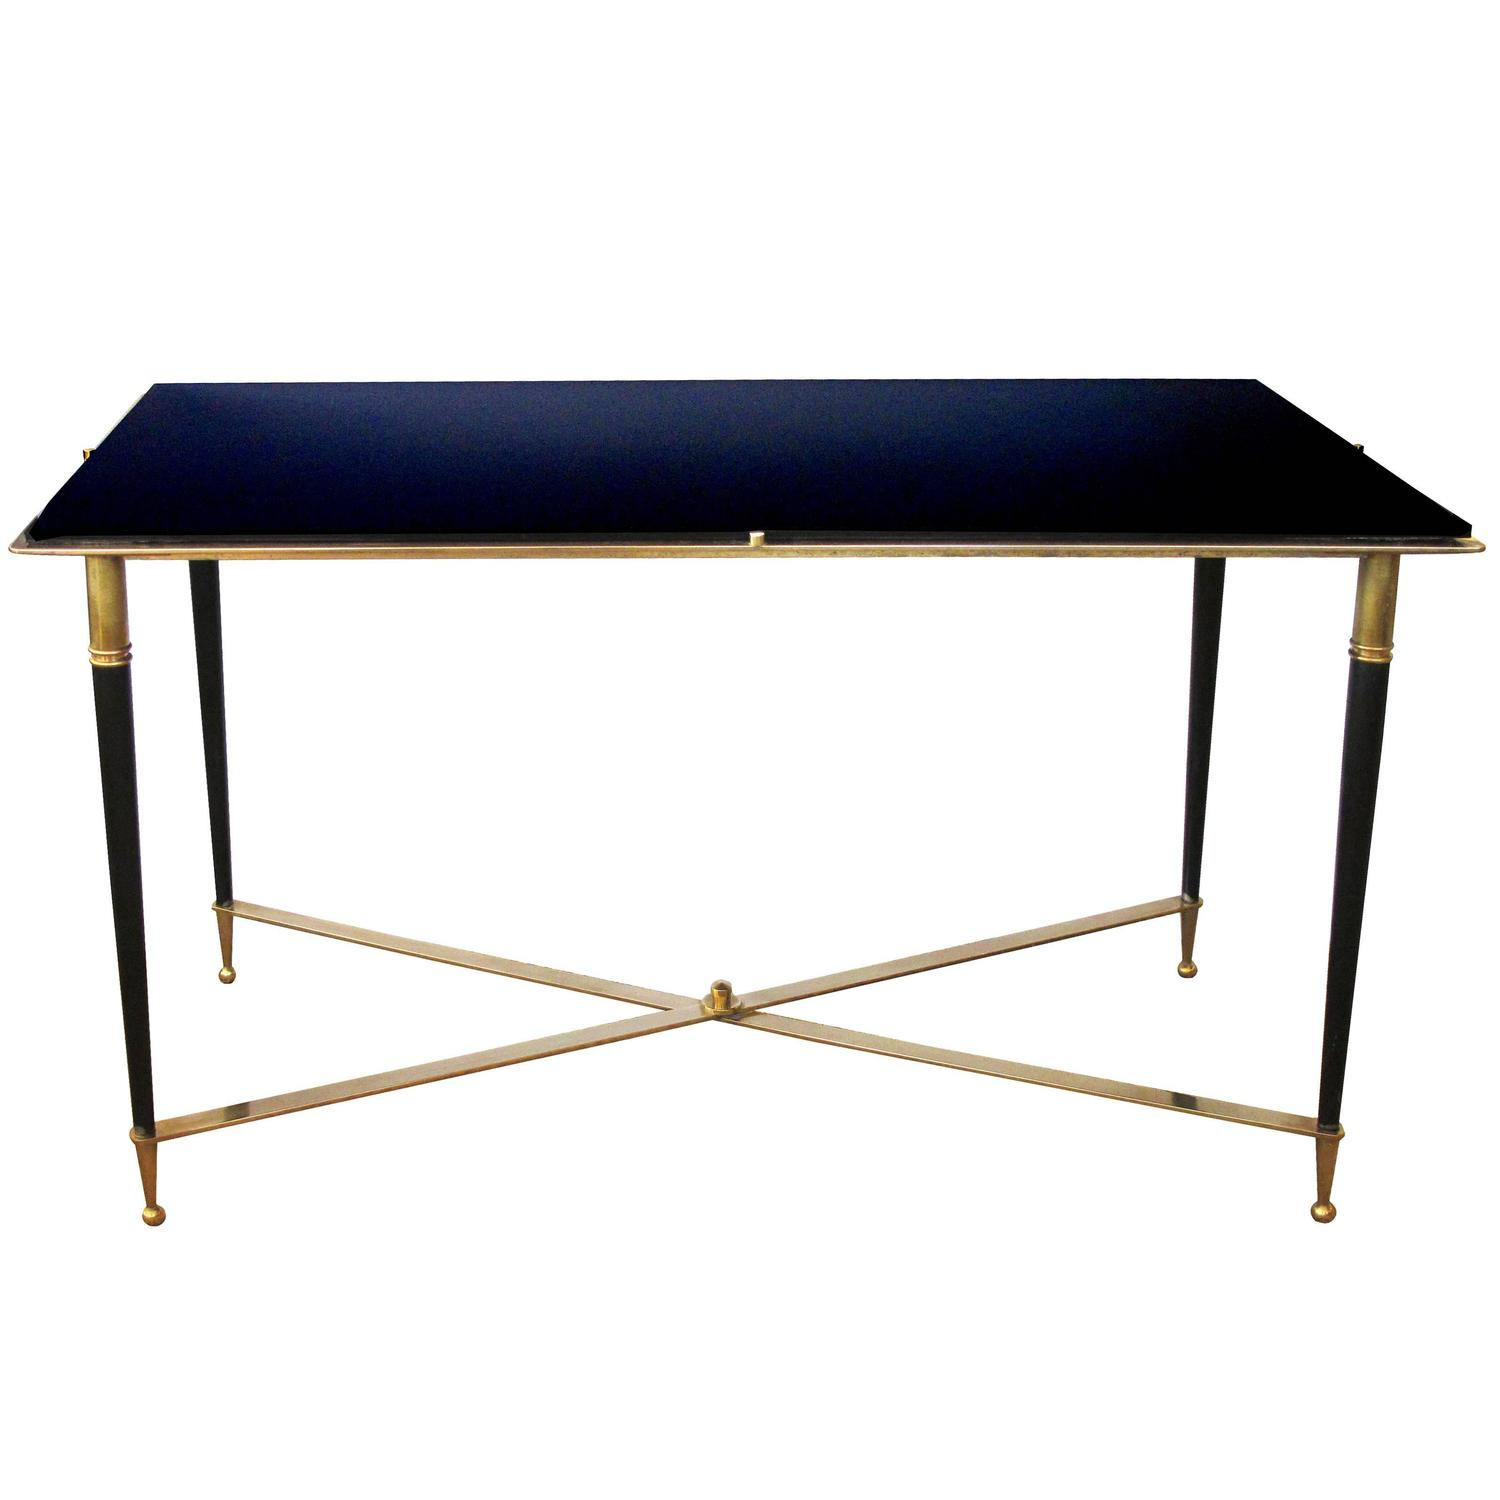 Chic French Rectangular Brass And Metal Cocktail Table With Black Glass Top At 1stdibs